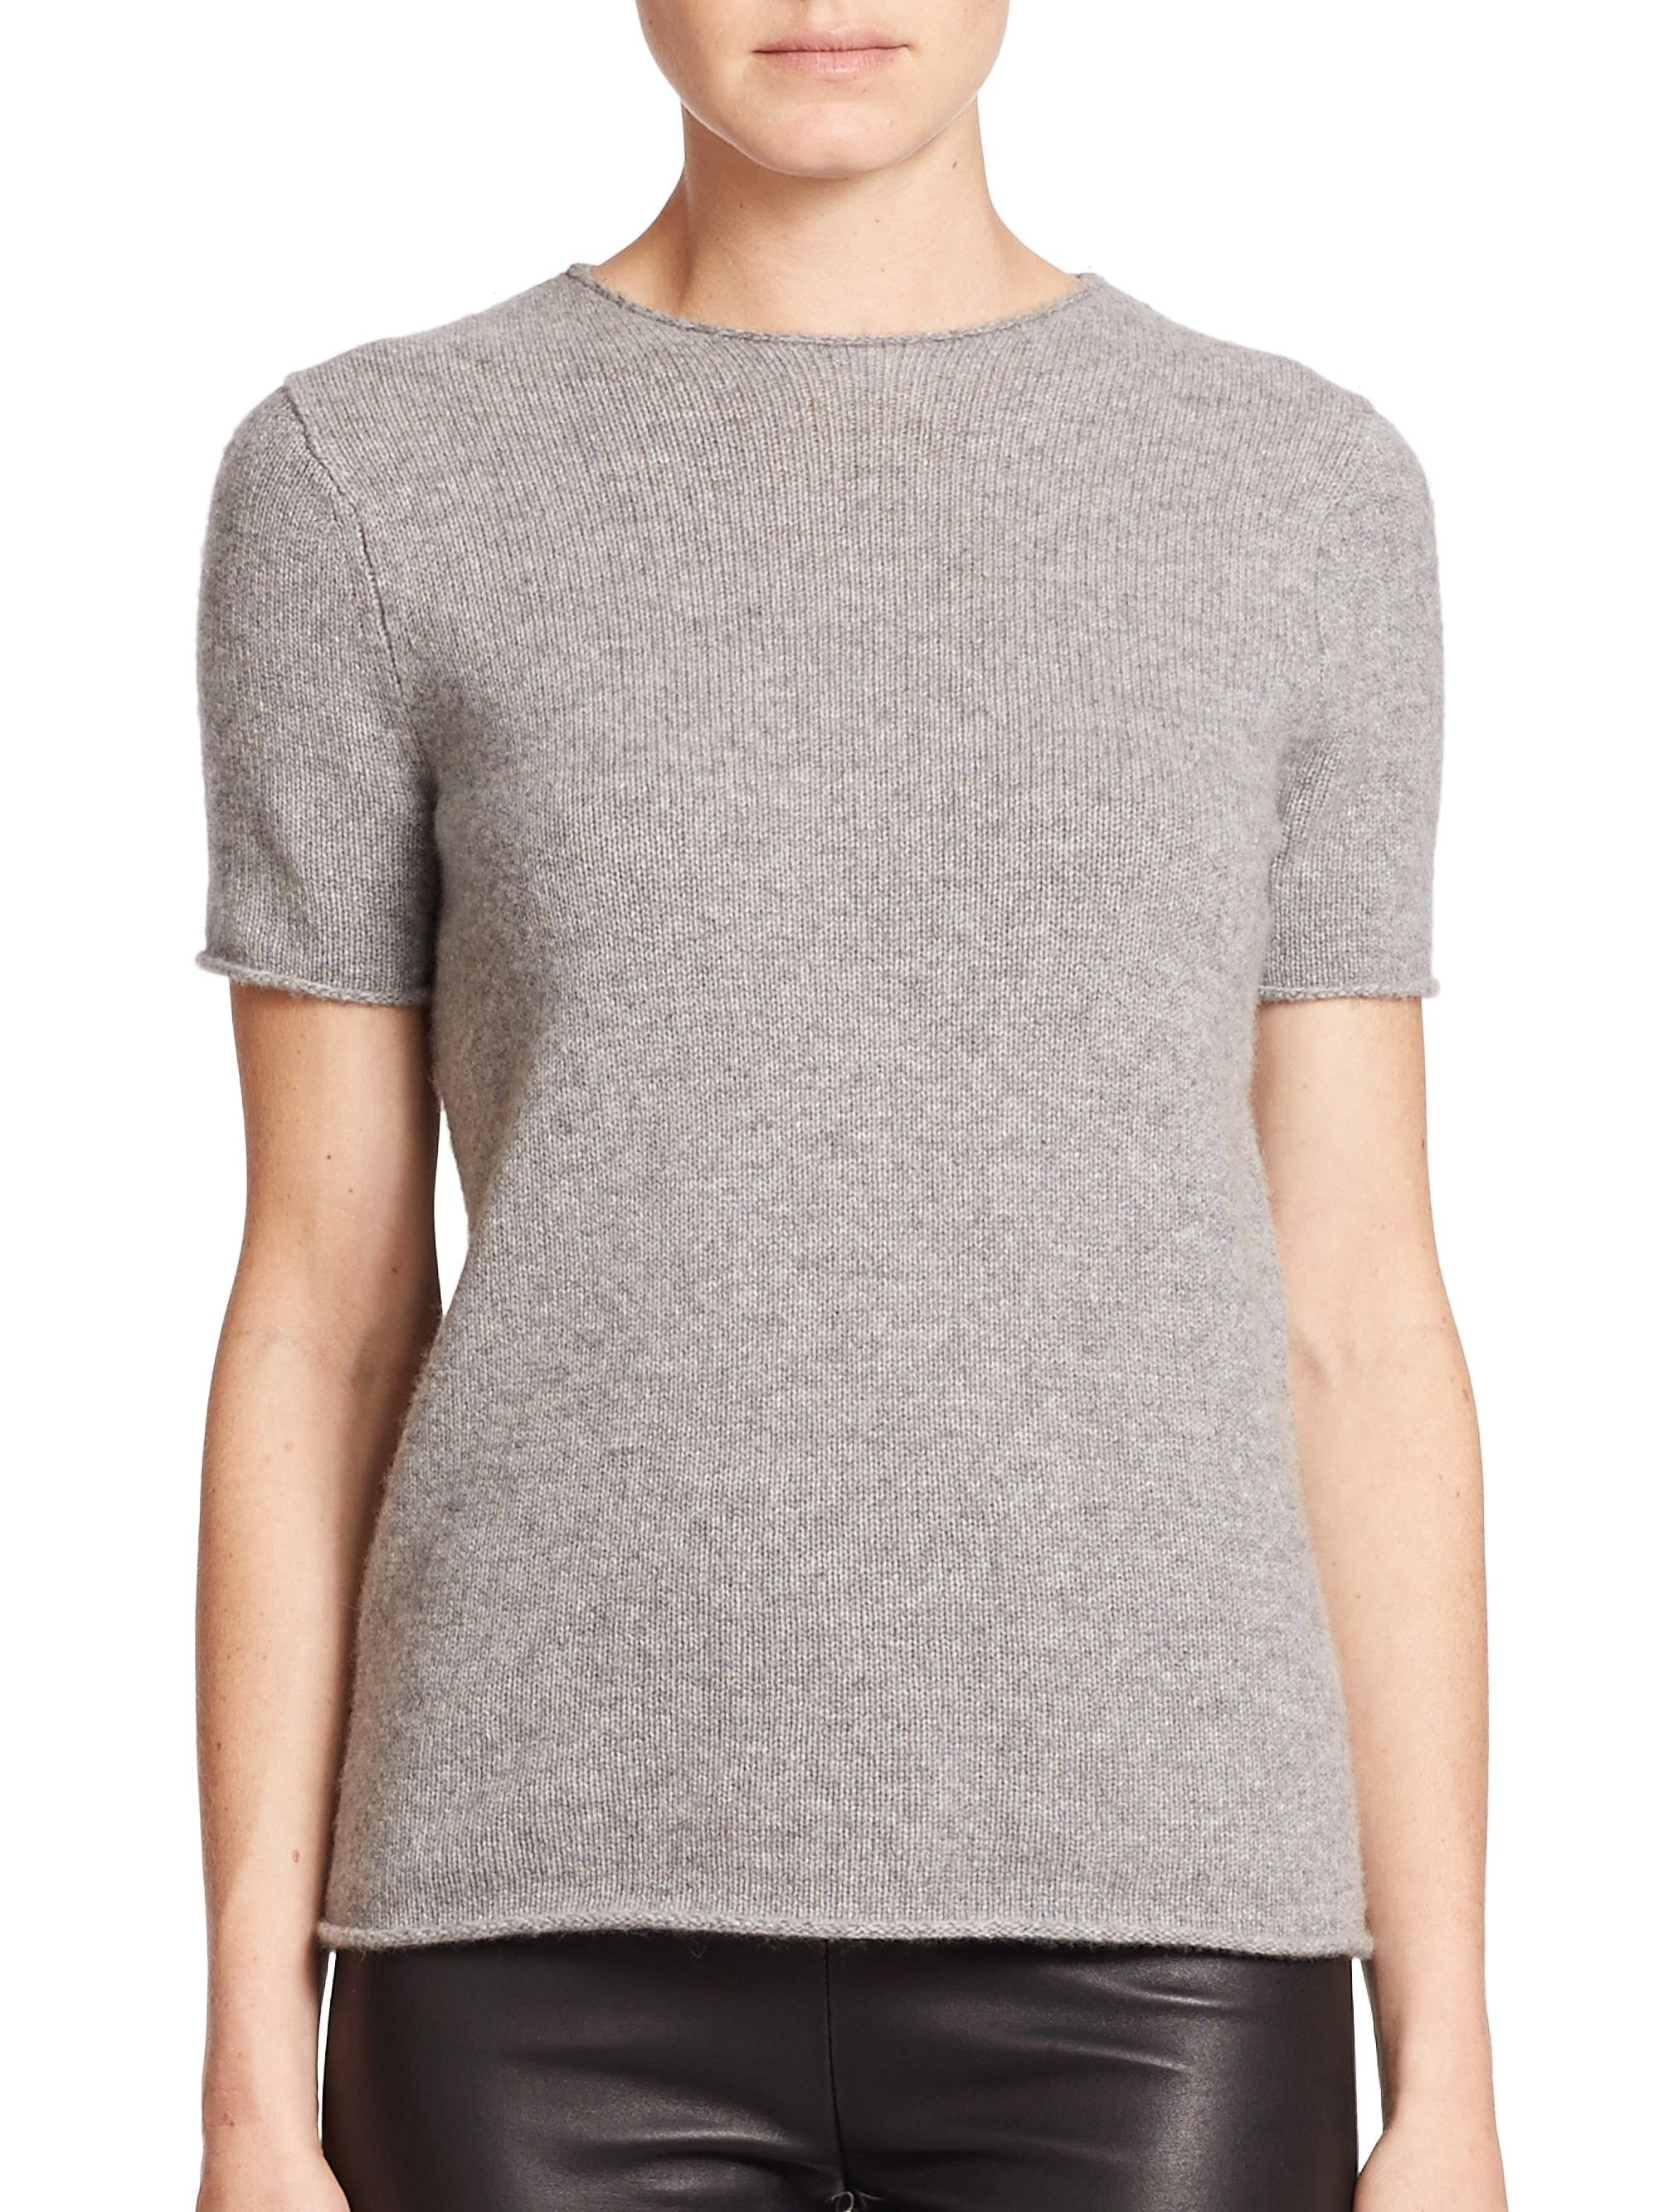 81a35daac35 Theory Tolleree Cashmere Tee - Black Small   Products   Tees ...